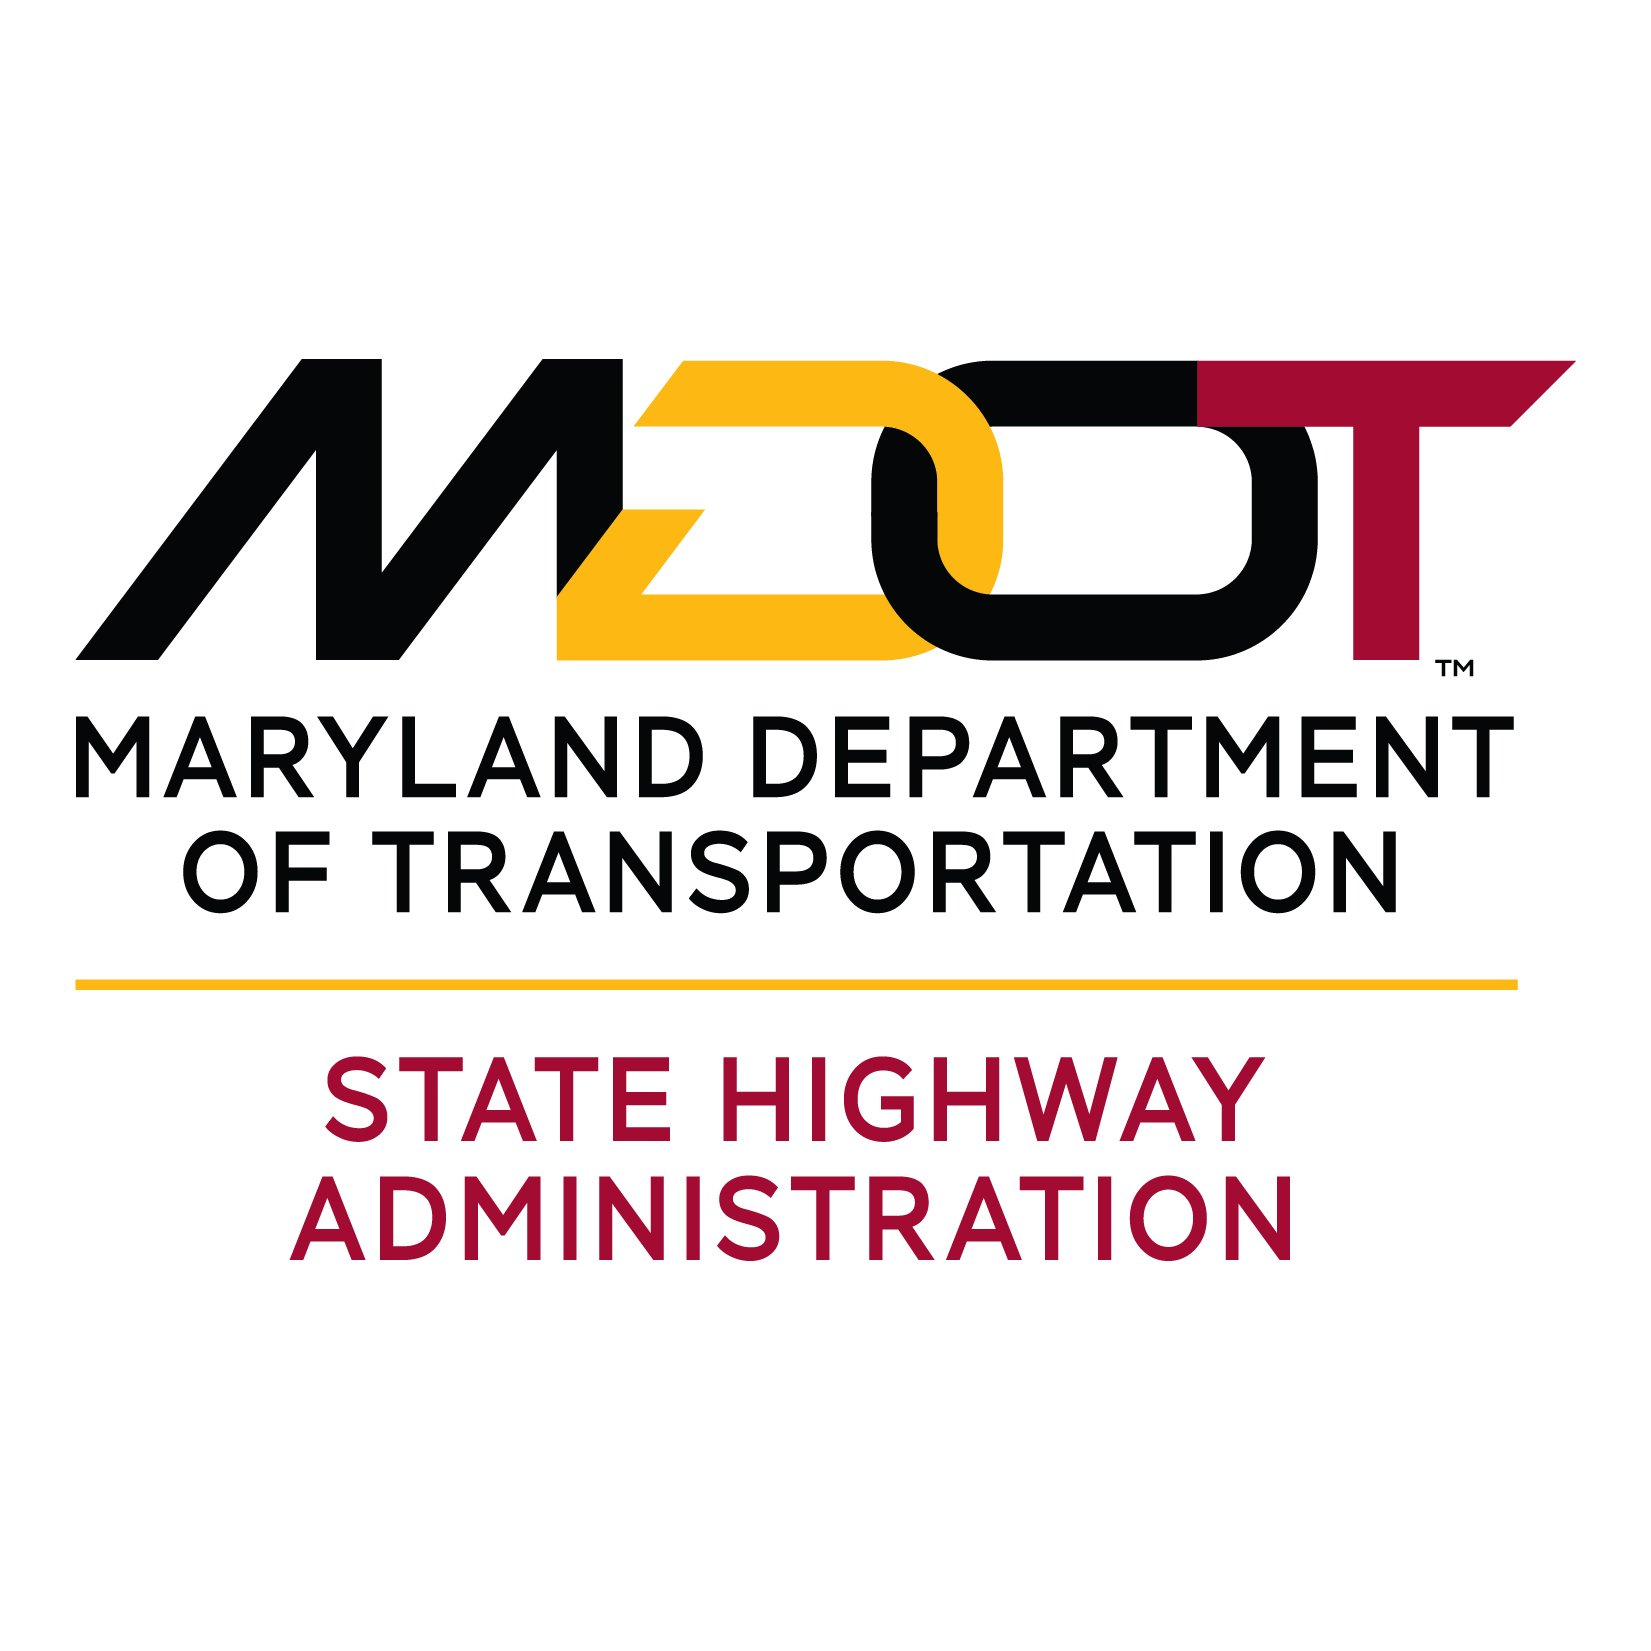 State Highway Administration